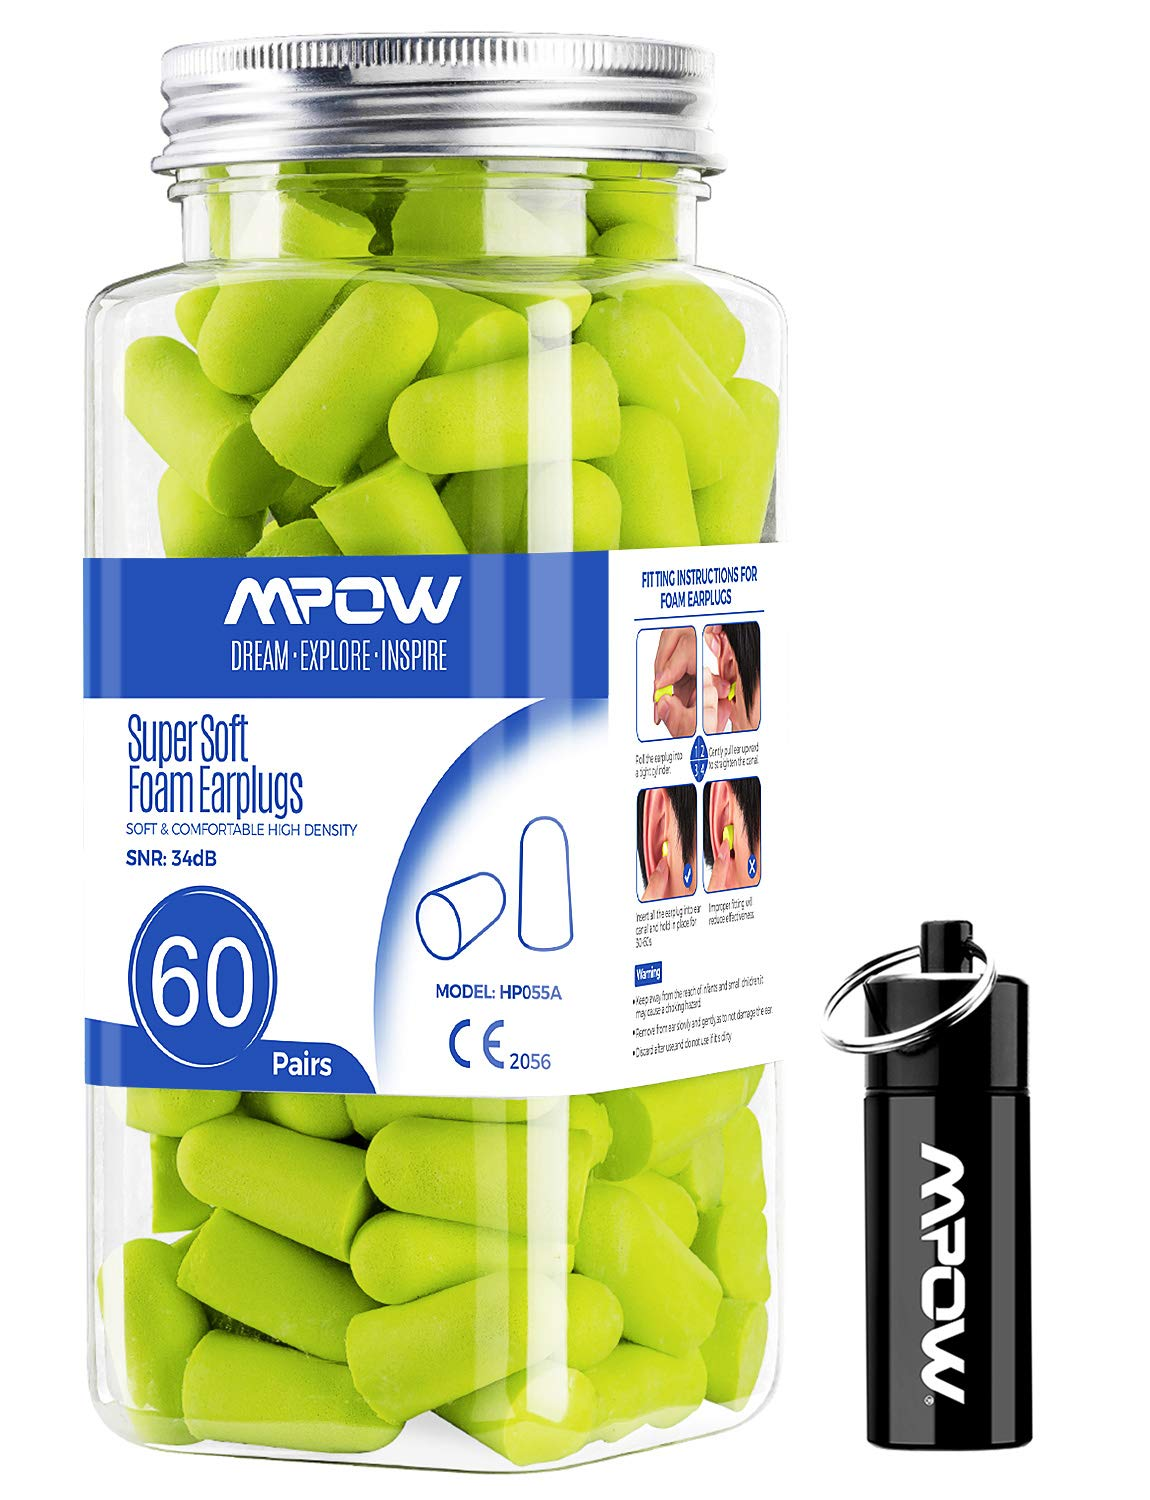 Mpow 055A Ear Plugs 60 Pairs, Super Soft Foam Ear Plugs 34dB SNR, Noise Reduction Hearing Protector, with Aluminum Carry Case, for Sleeping, Woodworking, Shooting, Travel, Loud Events-Green by Mpow